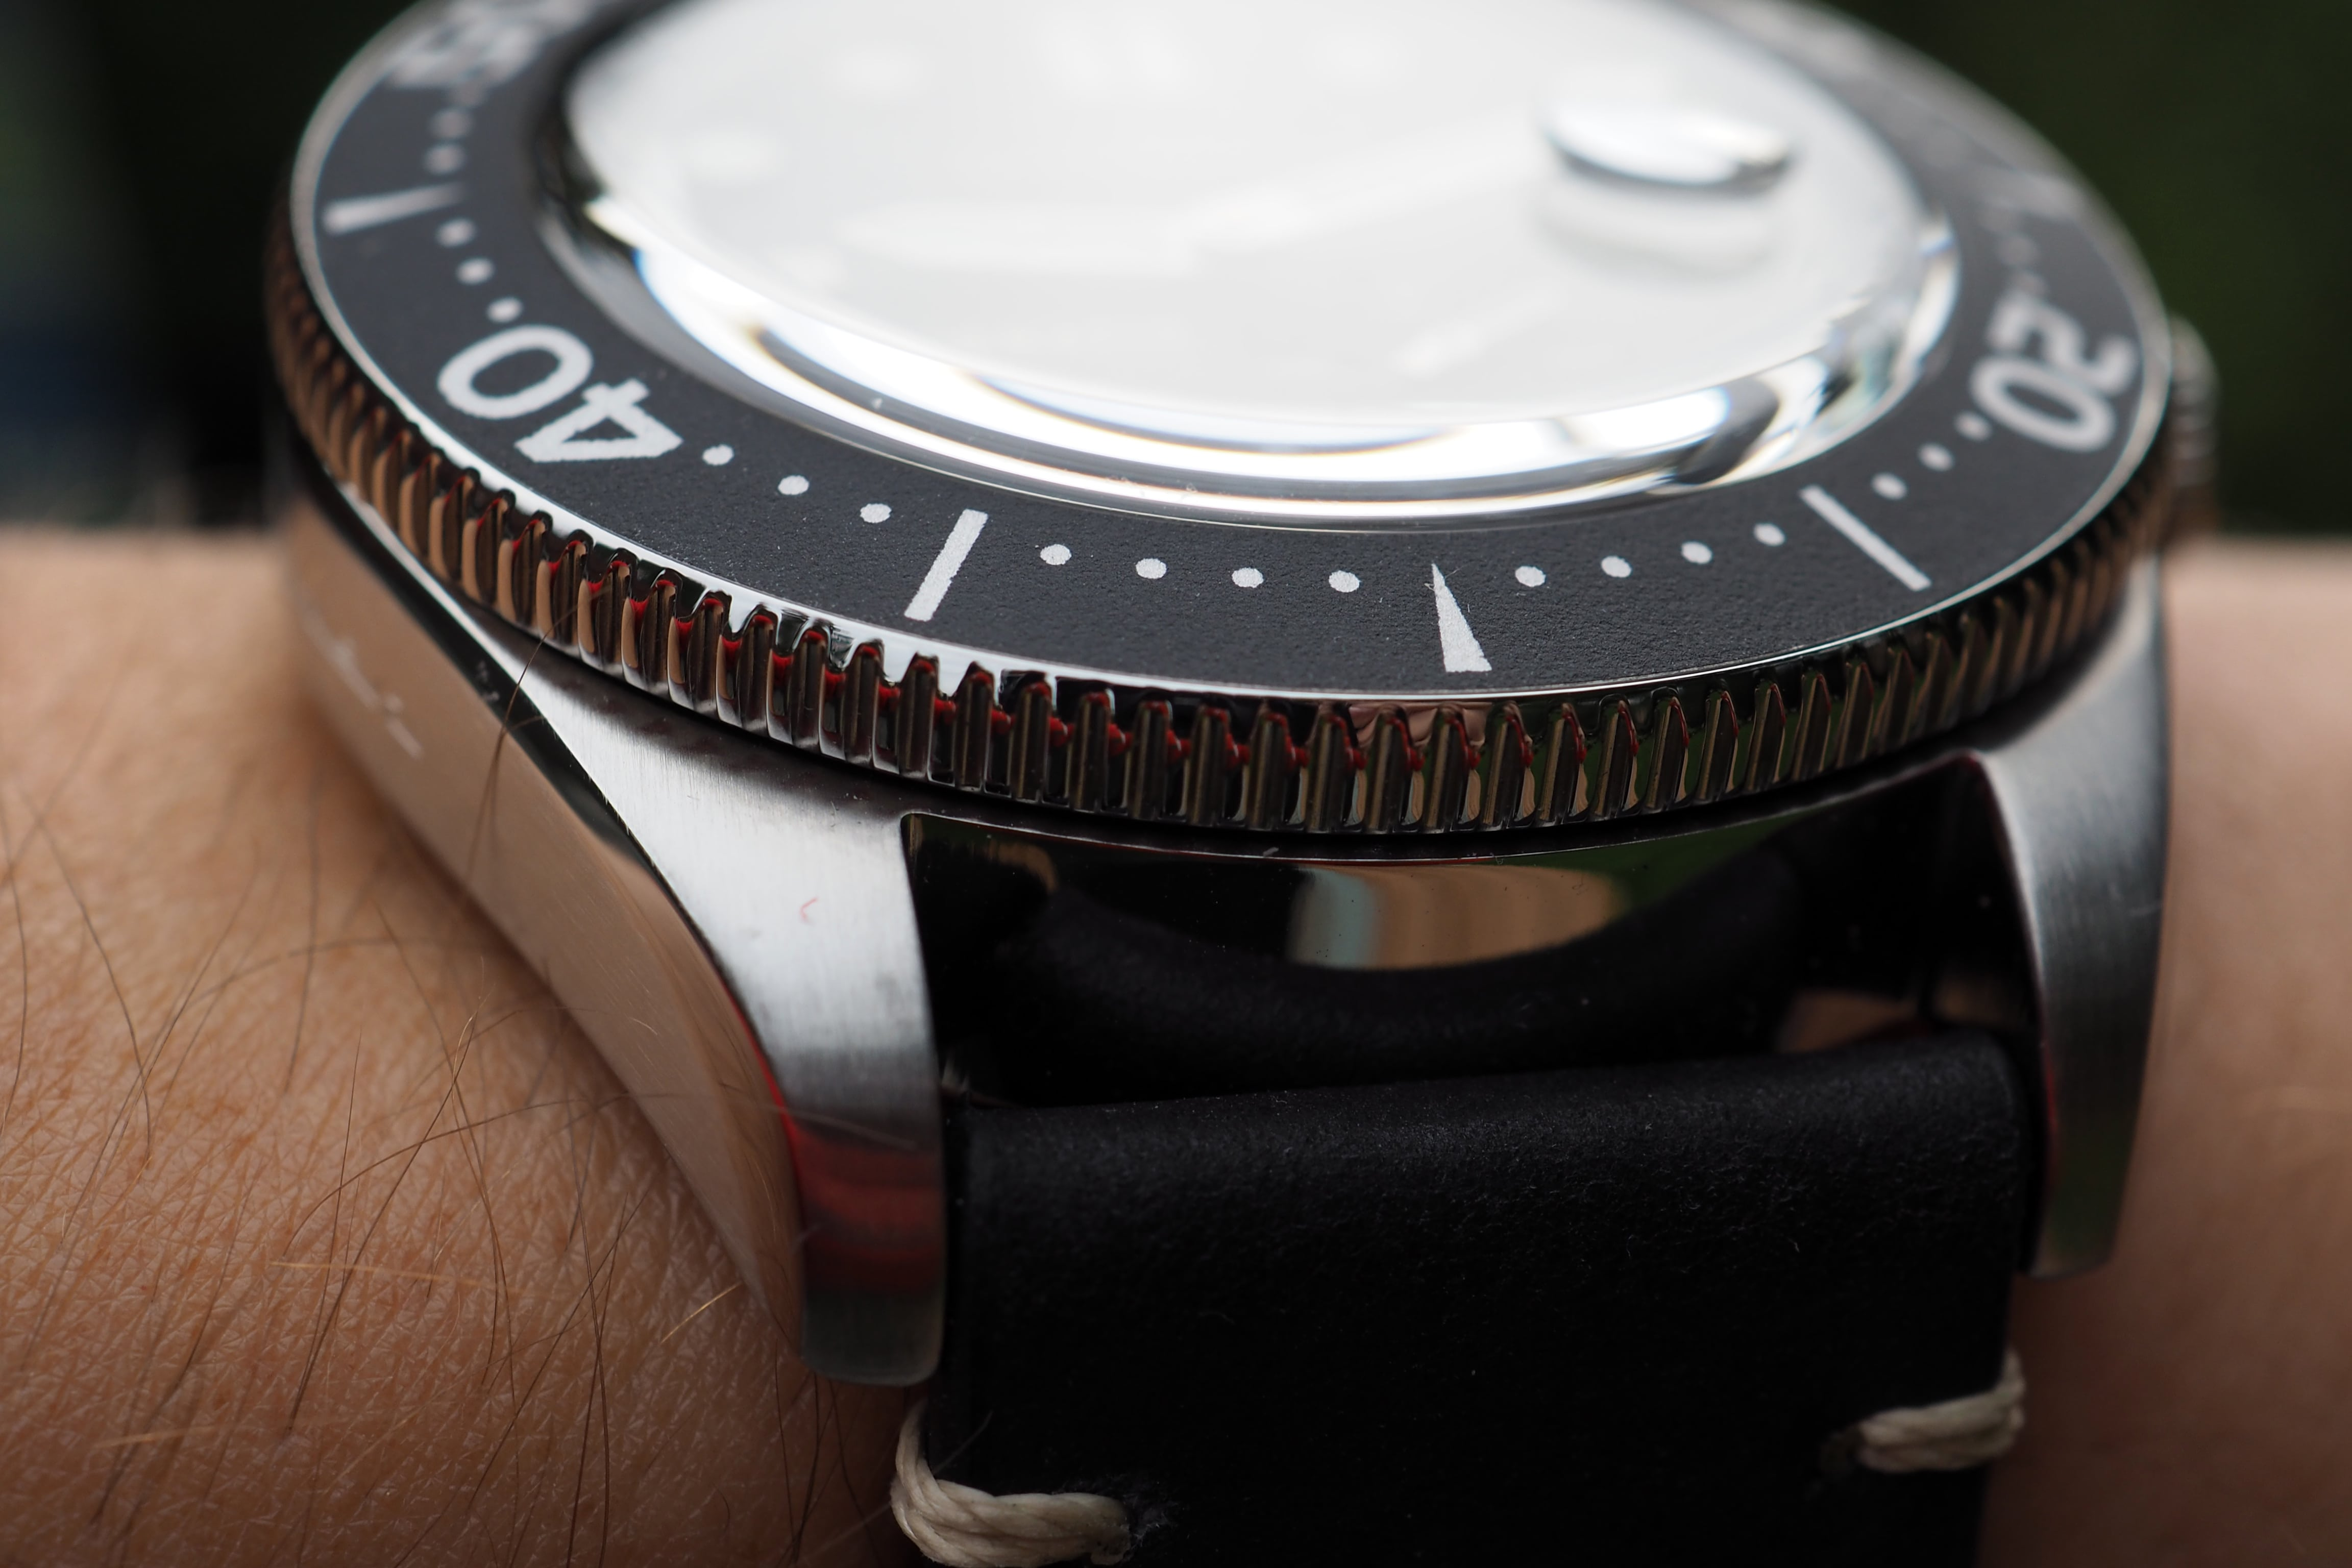 Coin edged bezel and lugs